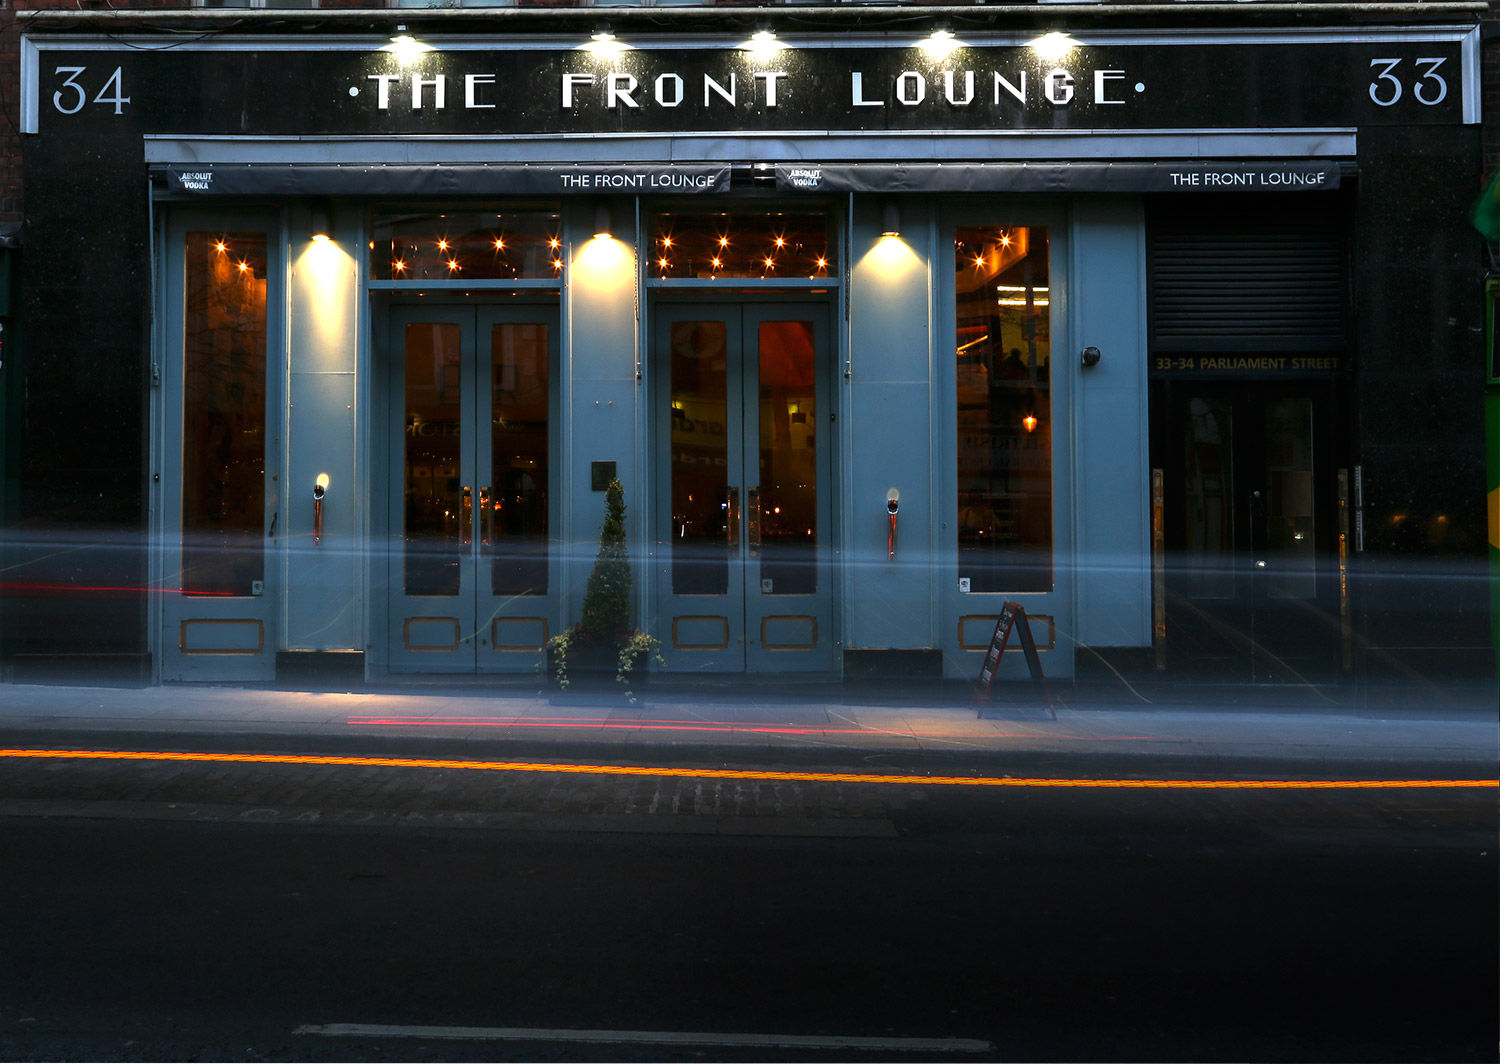 The Front Lounge